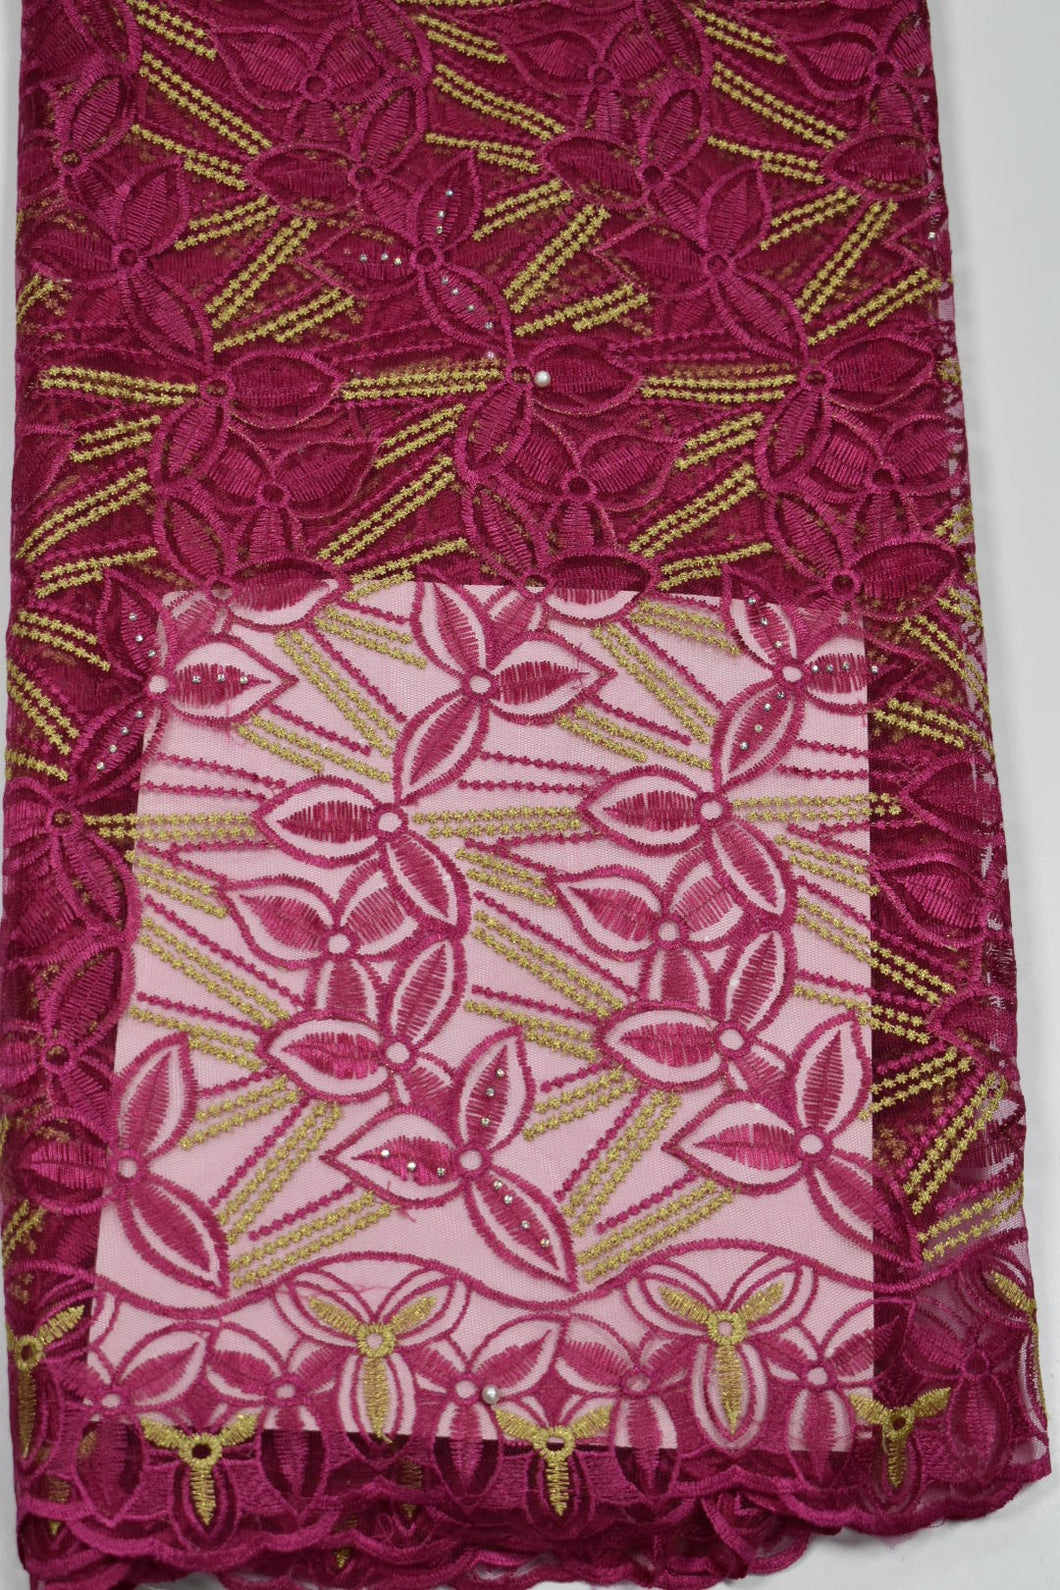 Fuchsia Pink and Gold French Lace - 5 Yards